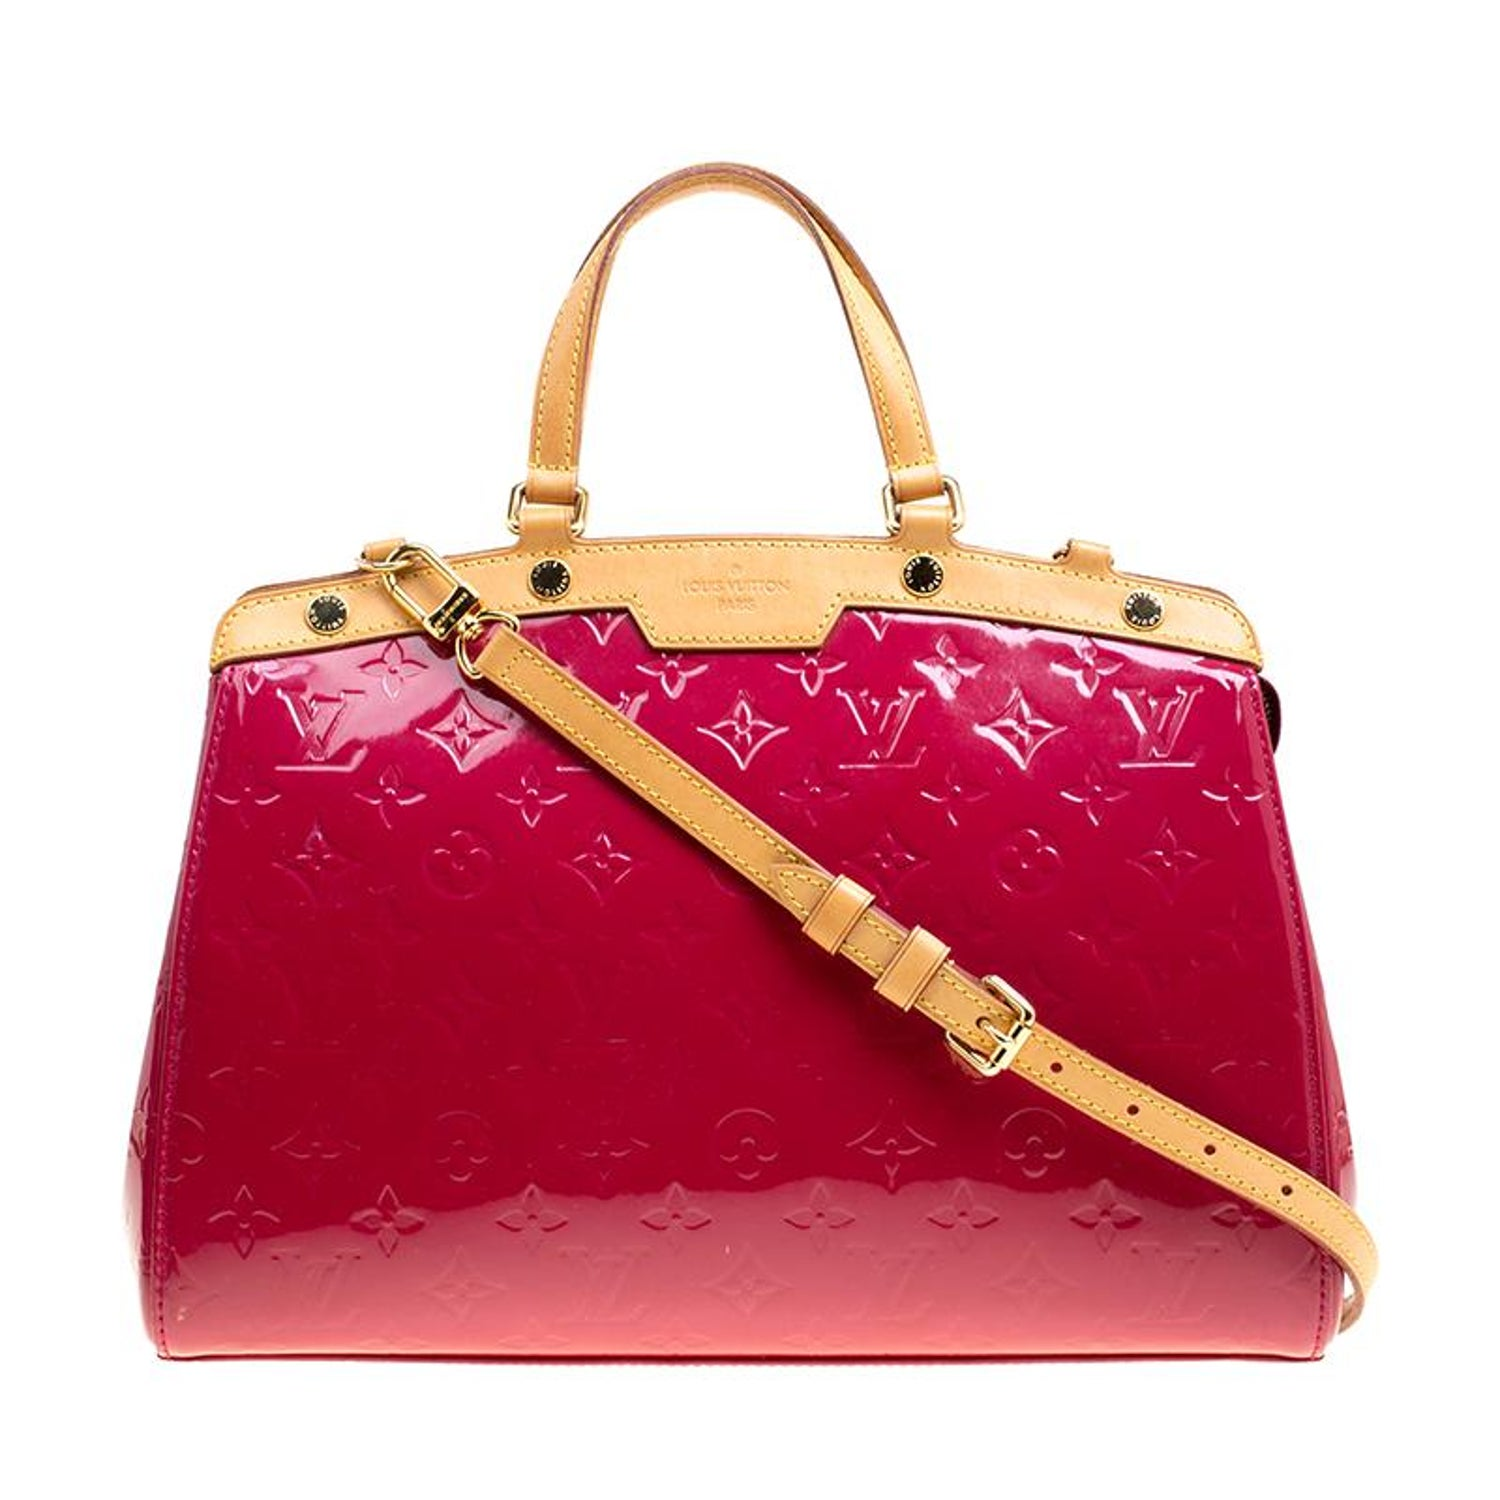 e97e139c3cb3 Louis Vuitton Rose Pop Monogram Vernis Brea MM Bag For Sale at 1stdibs